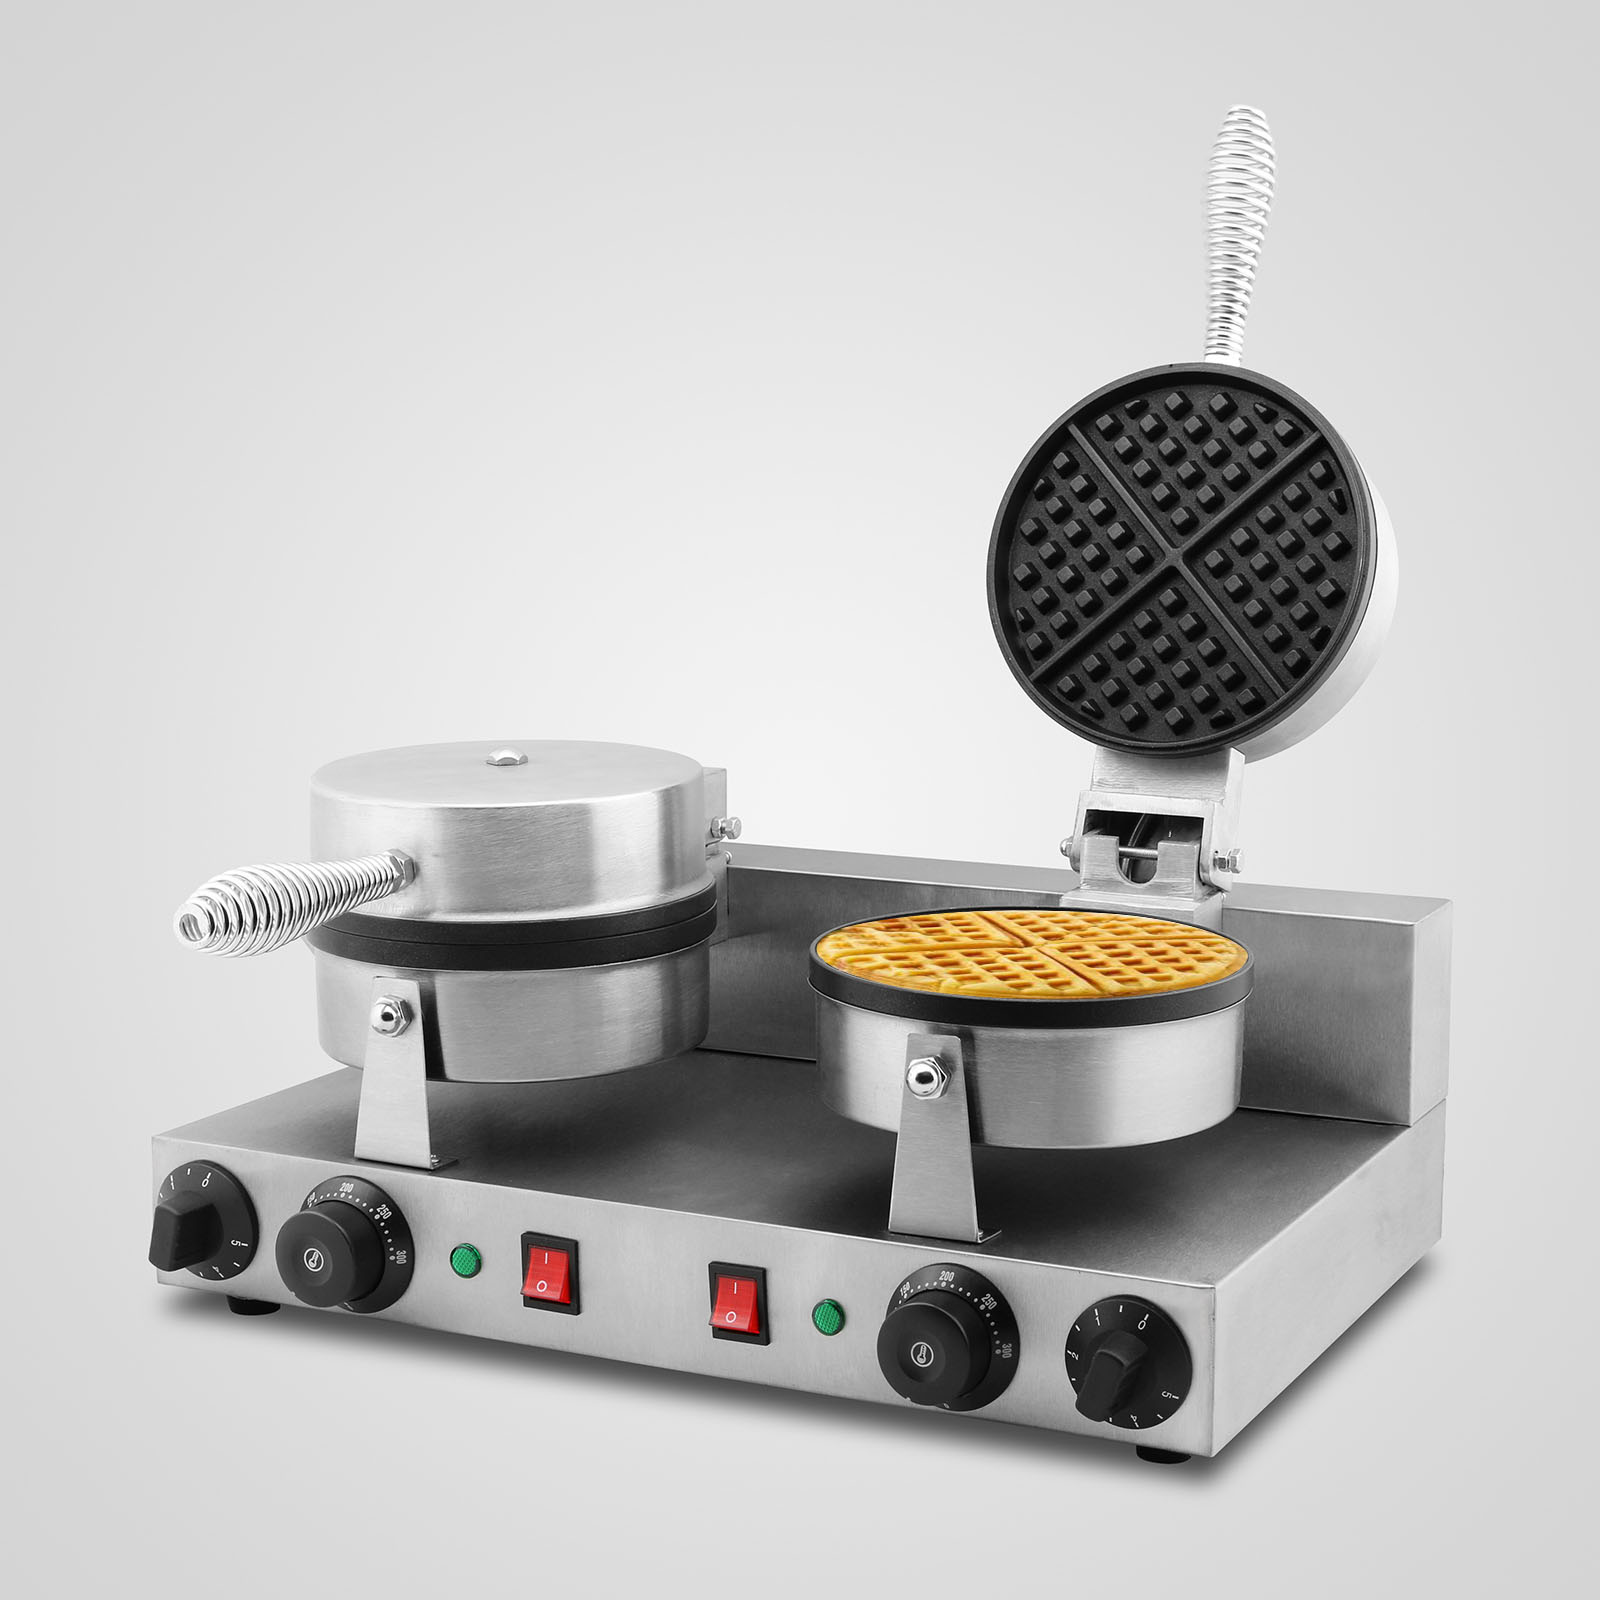 New 2400w Electric Double Waffle Maker Machine Baker Non